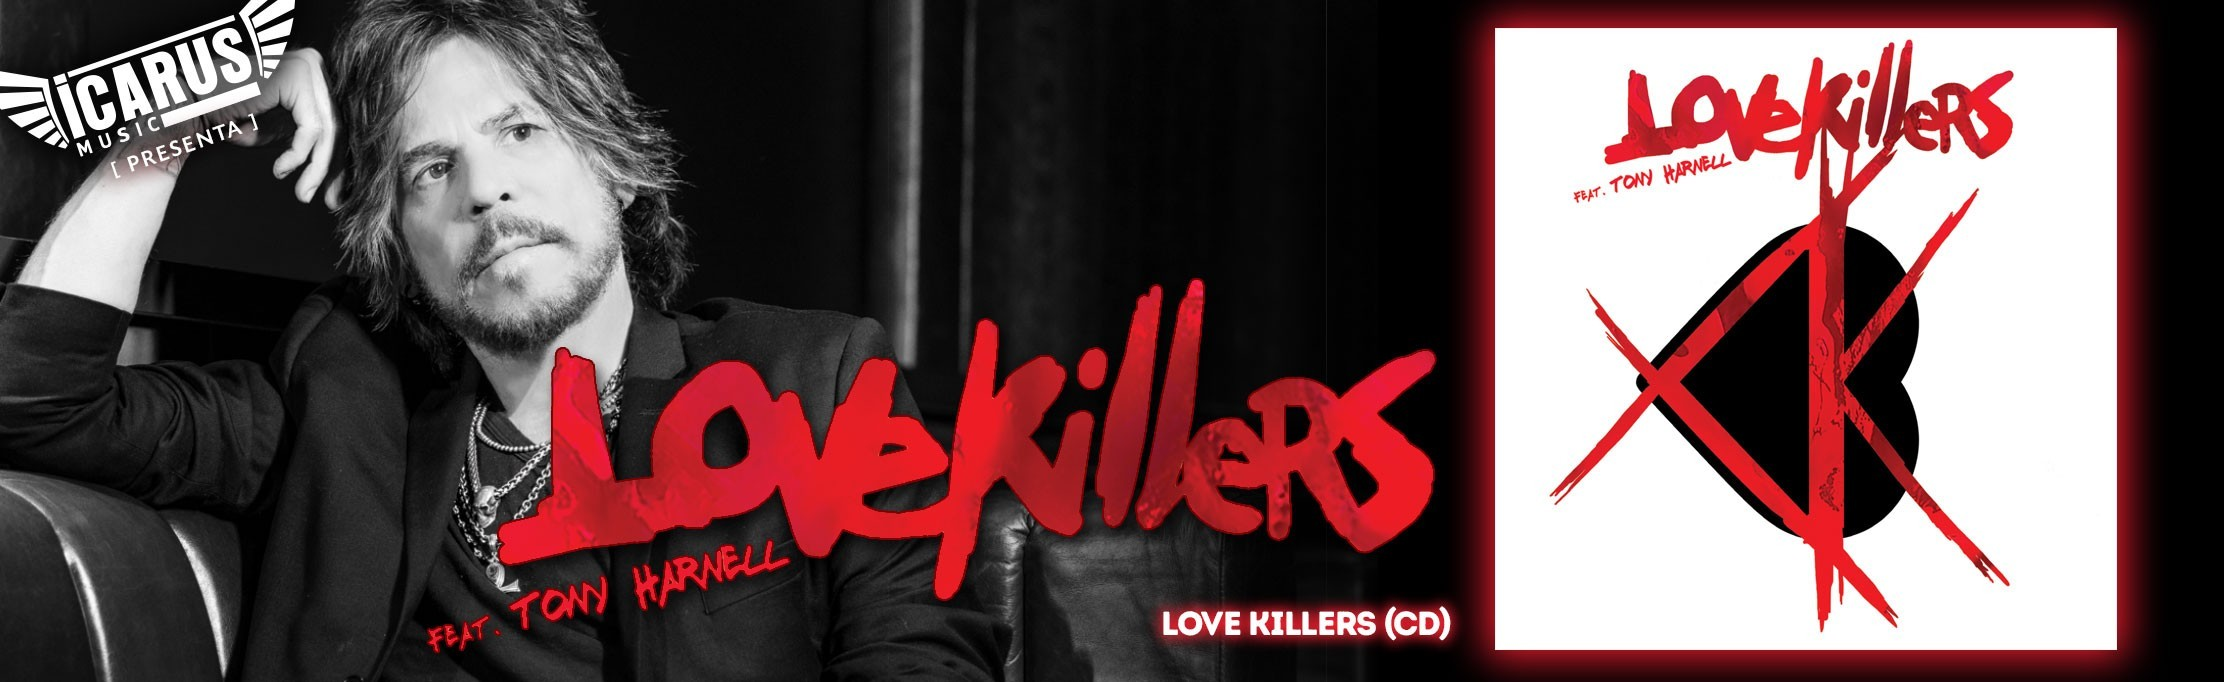 LOVEKILLERS -Love Killers - CD  Tony Harnell recupera el genuino sonido TNT en Lovekillers